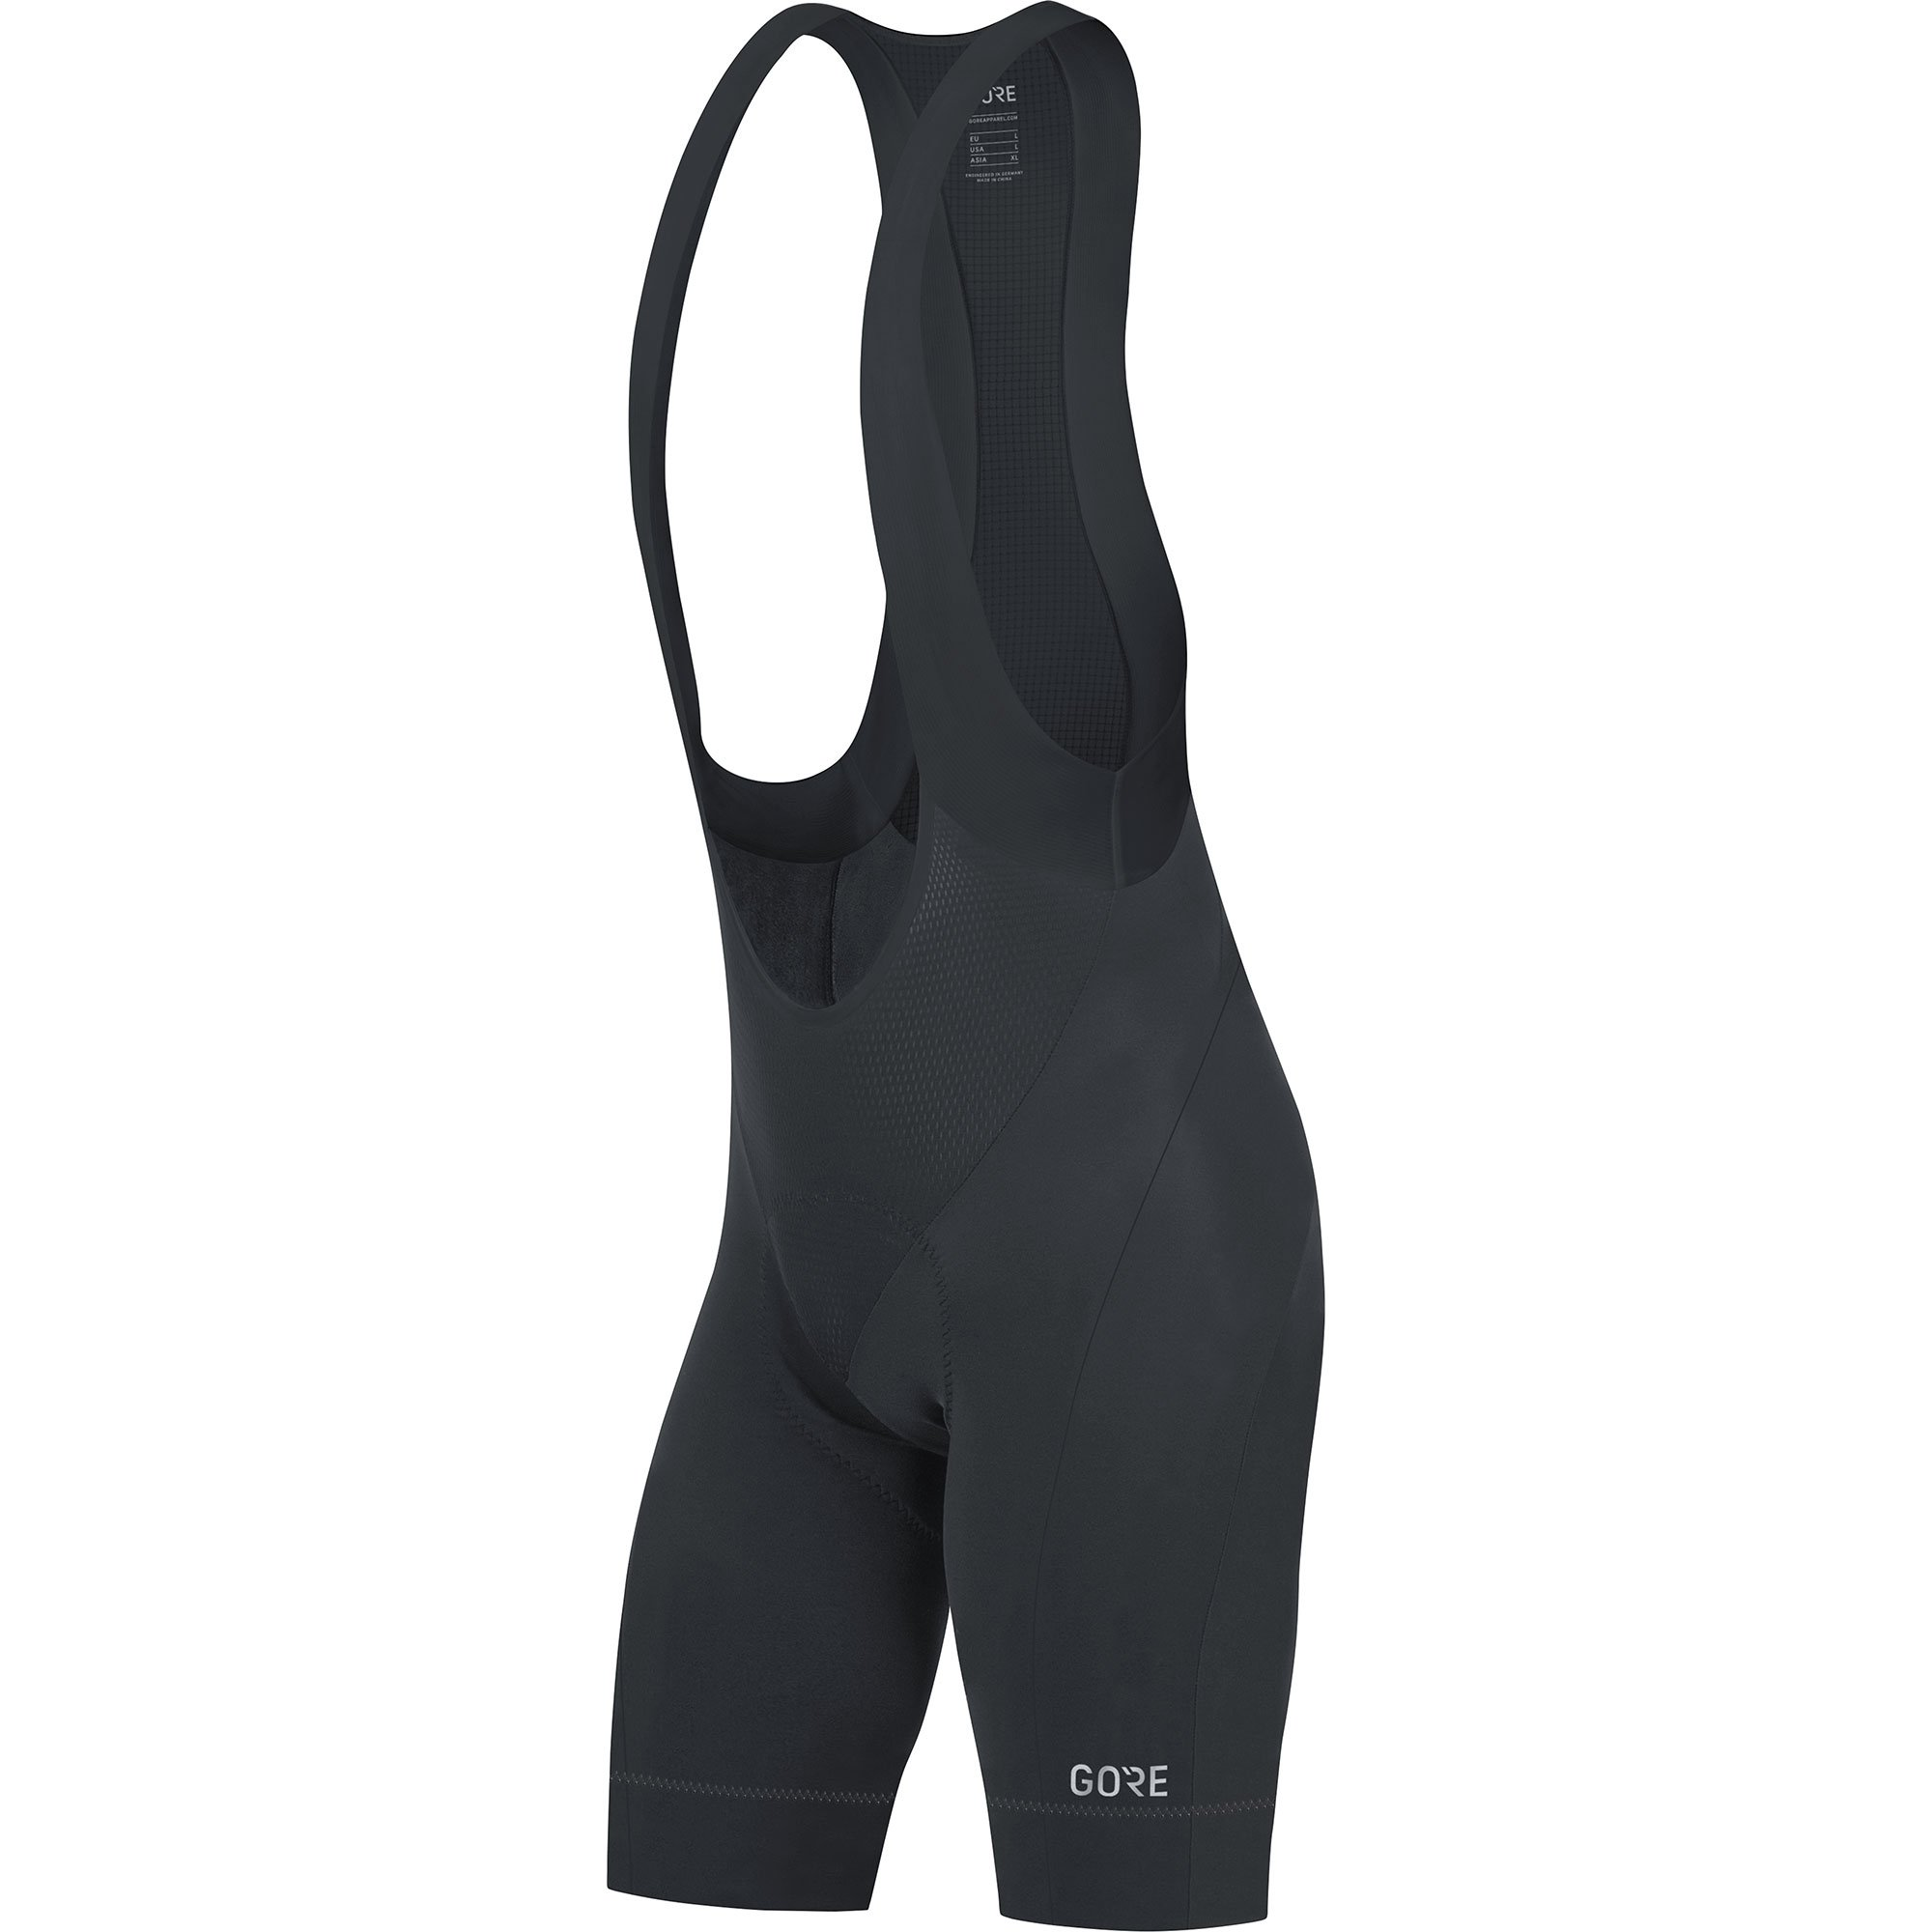 GORE Wear Men's Breathable Road Bike Bib Shorts, With Seat Insert, GORE Wear C5 Bib Shorts +, Size: S, Color: Black, 100192